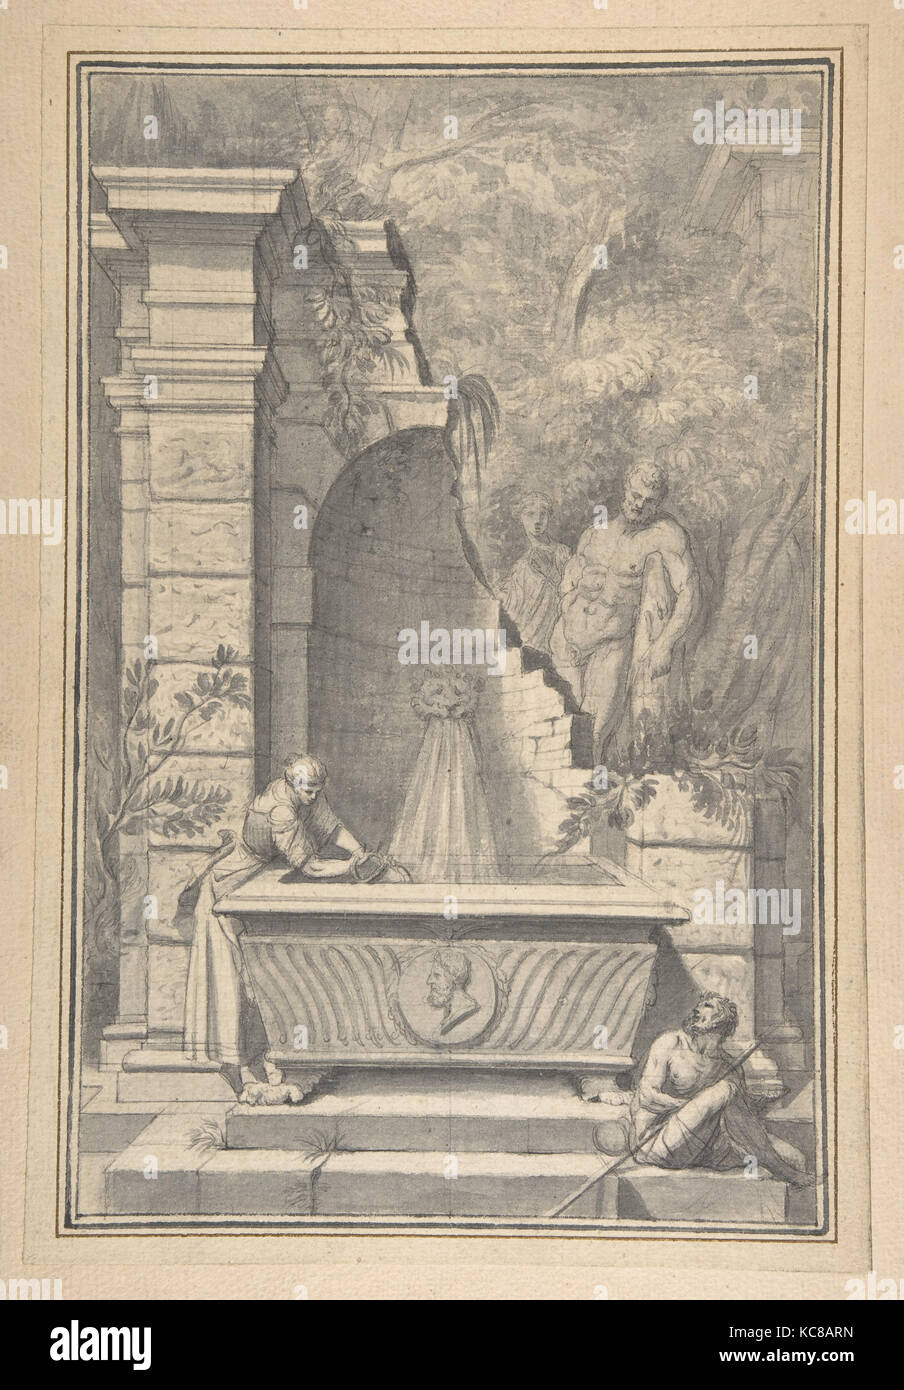 A Woman at a Fountain by a Ruined Temple, the Farnese Hercules in the Background, Johannes Antiquus, 18th century - Stock Image